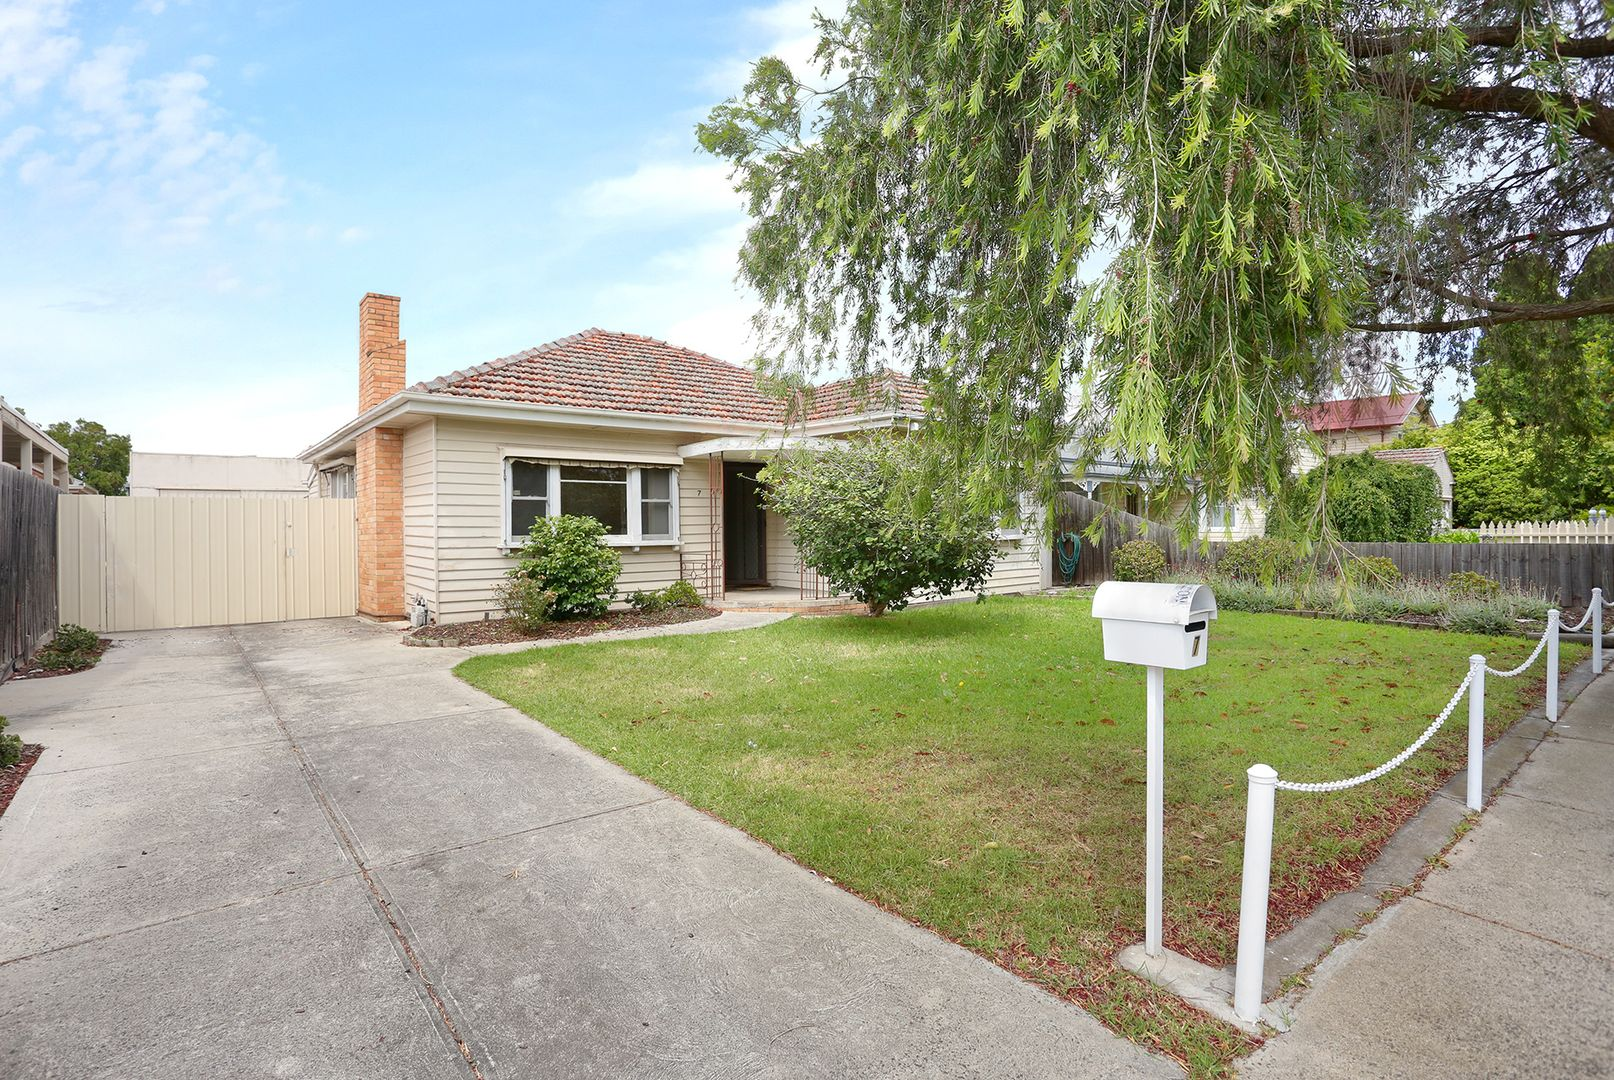 7 Daley Street, Pascoe Vale VIC 3044, Image 0